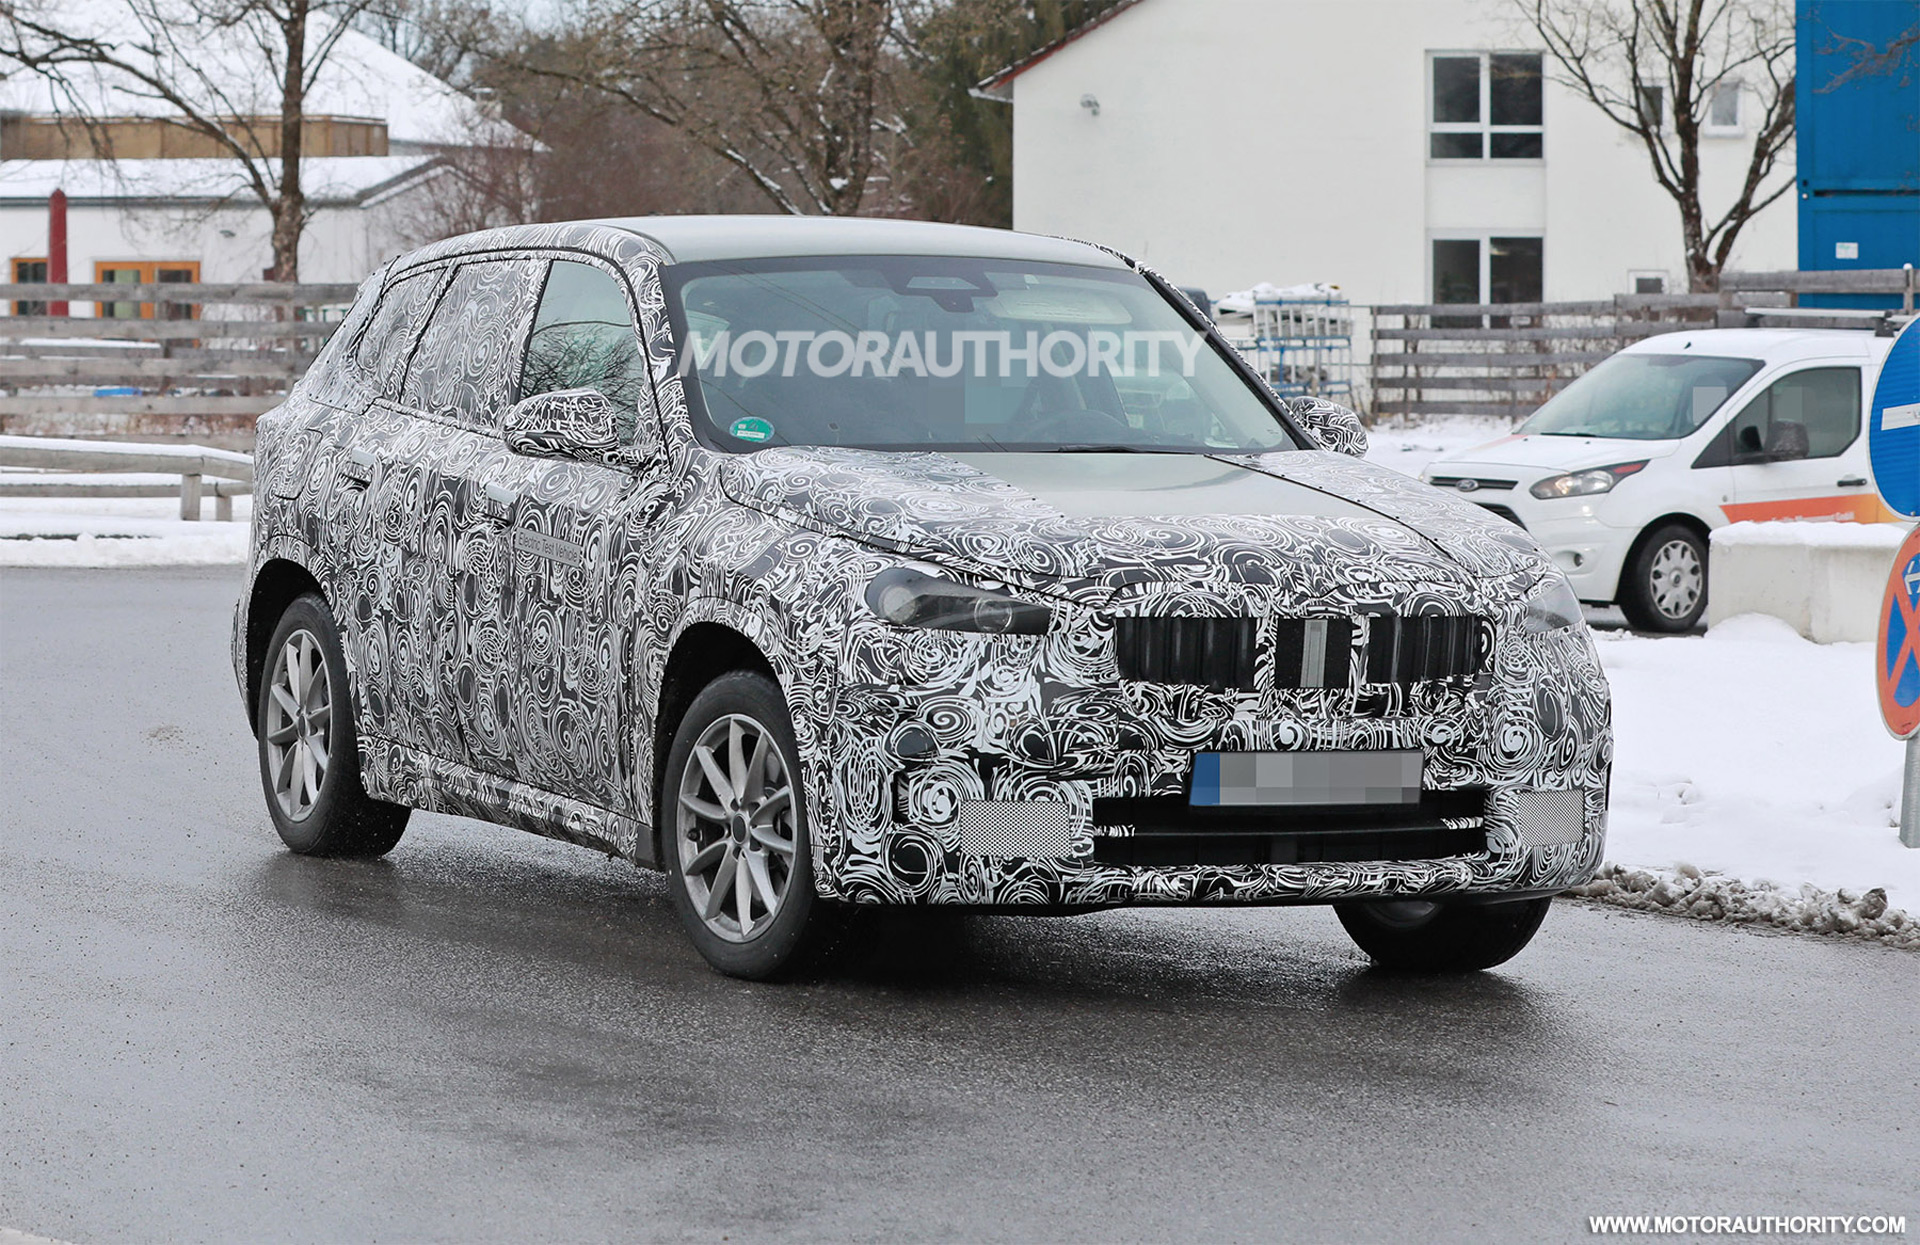 2023 BMW iX1 spy shots: Redesigned X1 crossover to offer electric option